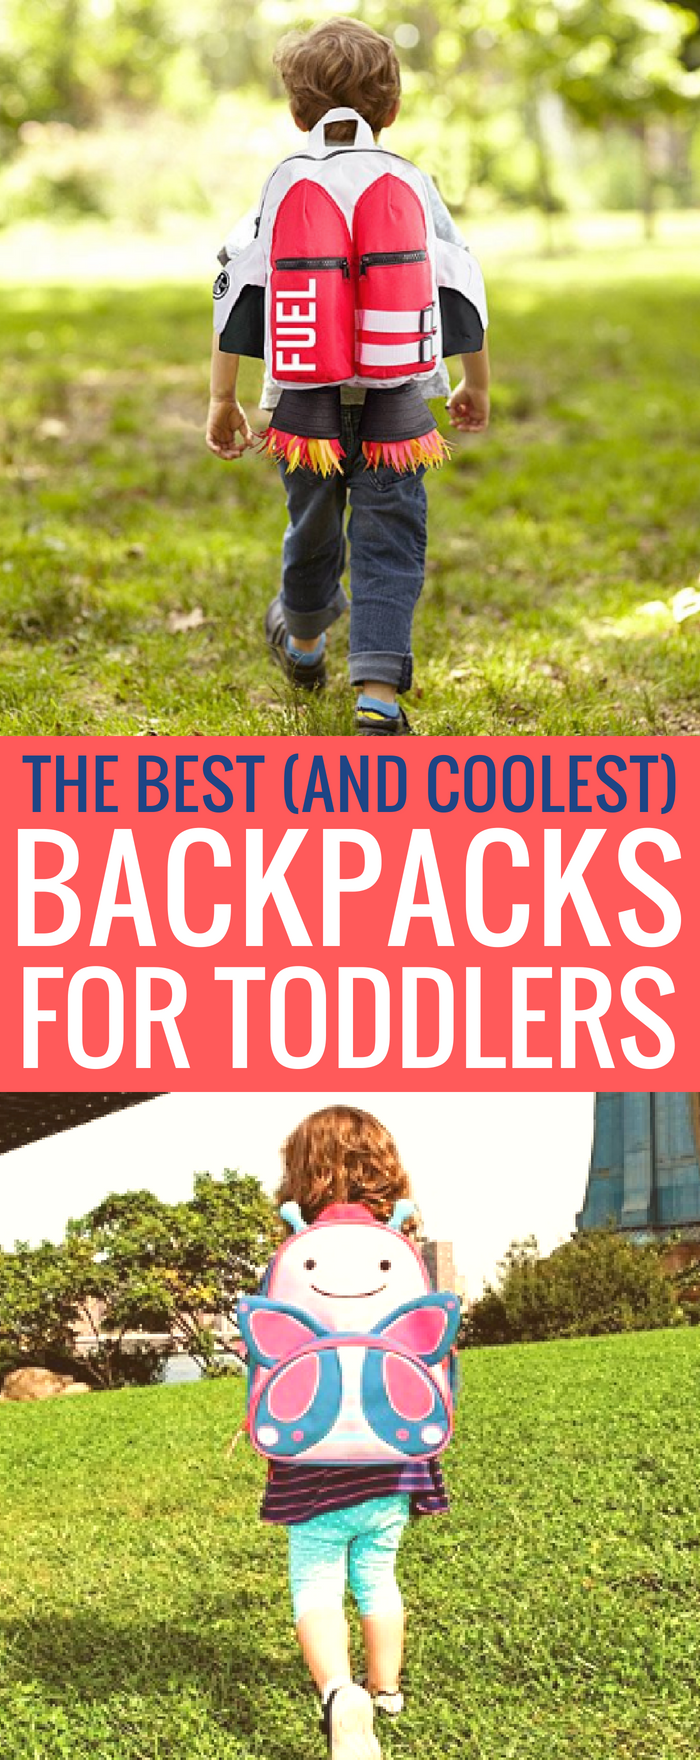 The Best Backpacks For Toddlers To Get Them Ready for School or travel #toddler #backpacks #familytravel #kindergarten #toddlers